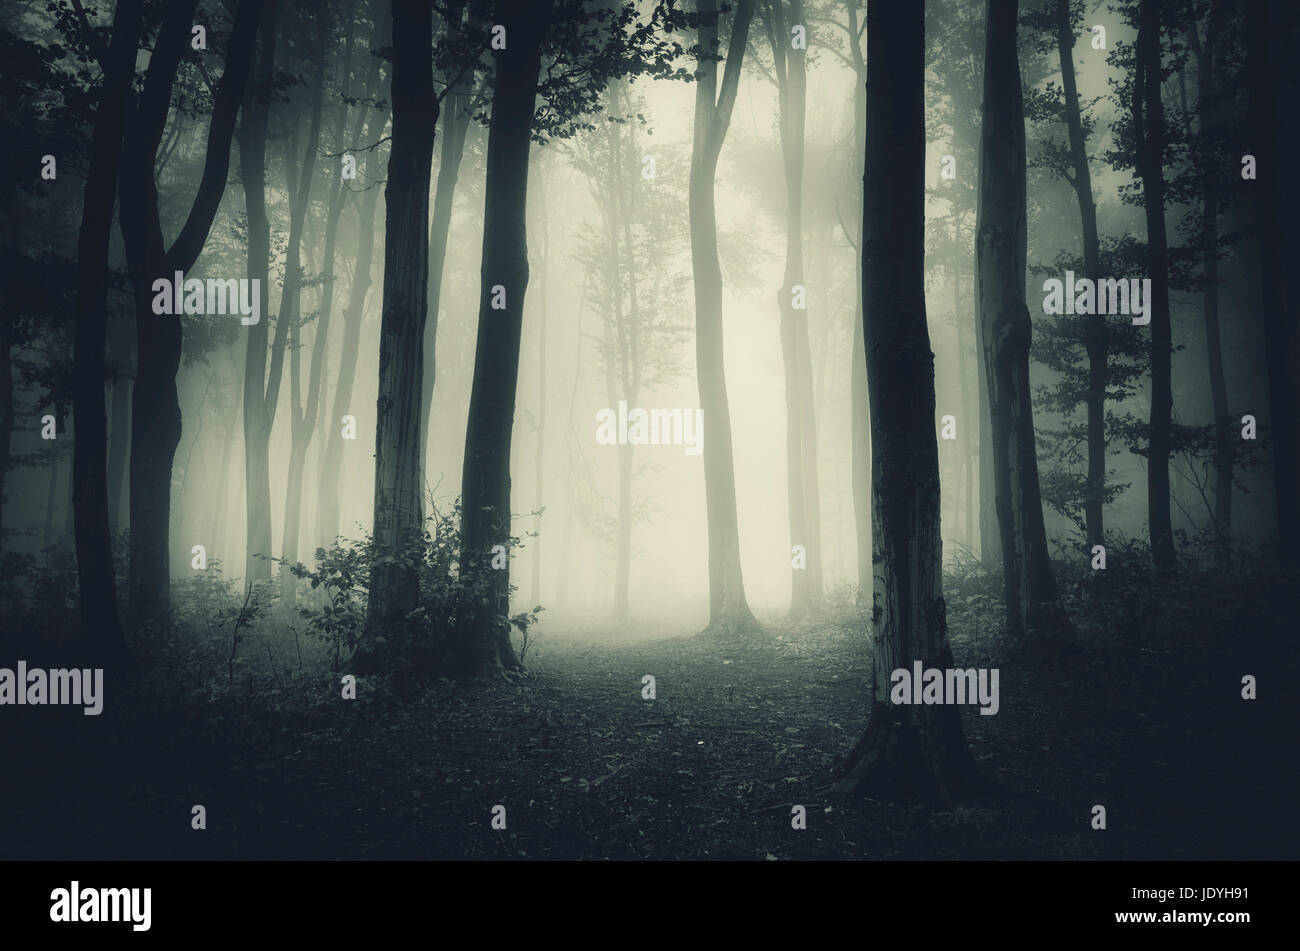 dark forest landscape with trees and fog - Stock Image